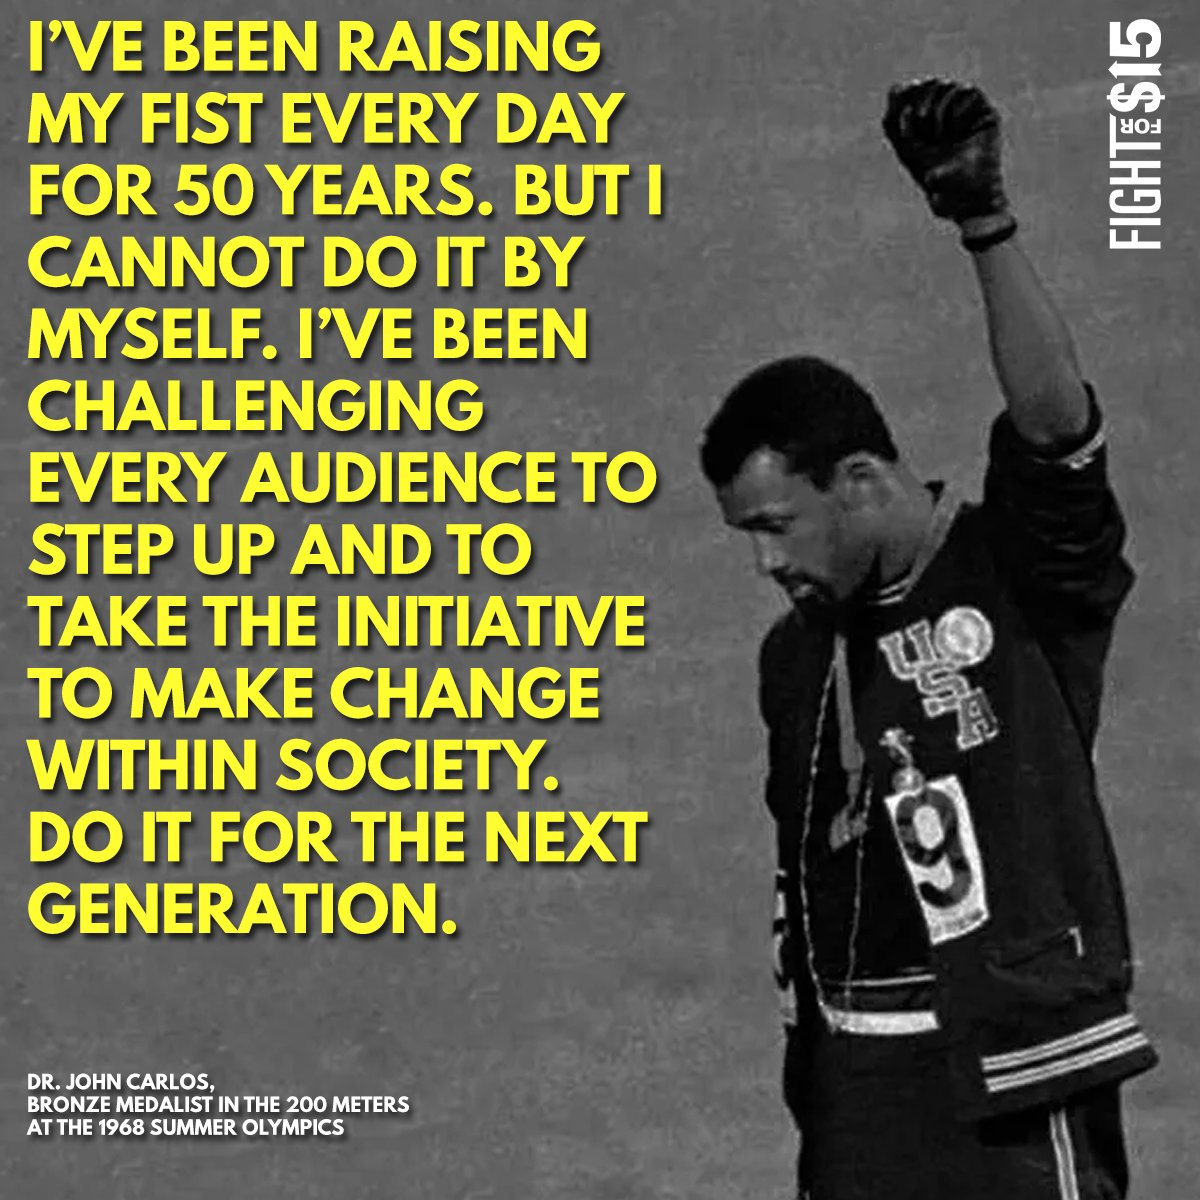 Tommie Smith, John Carlos, and Peter Norman created a historic touchstone against racism in America. Their inspiration is ours as we fight for racial and economic justice. https://t.co/0qWGNti4k6 #FightFor15